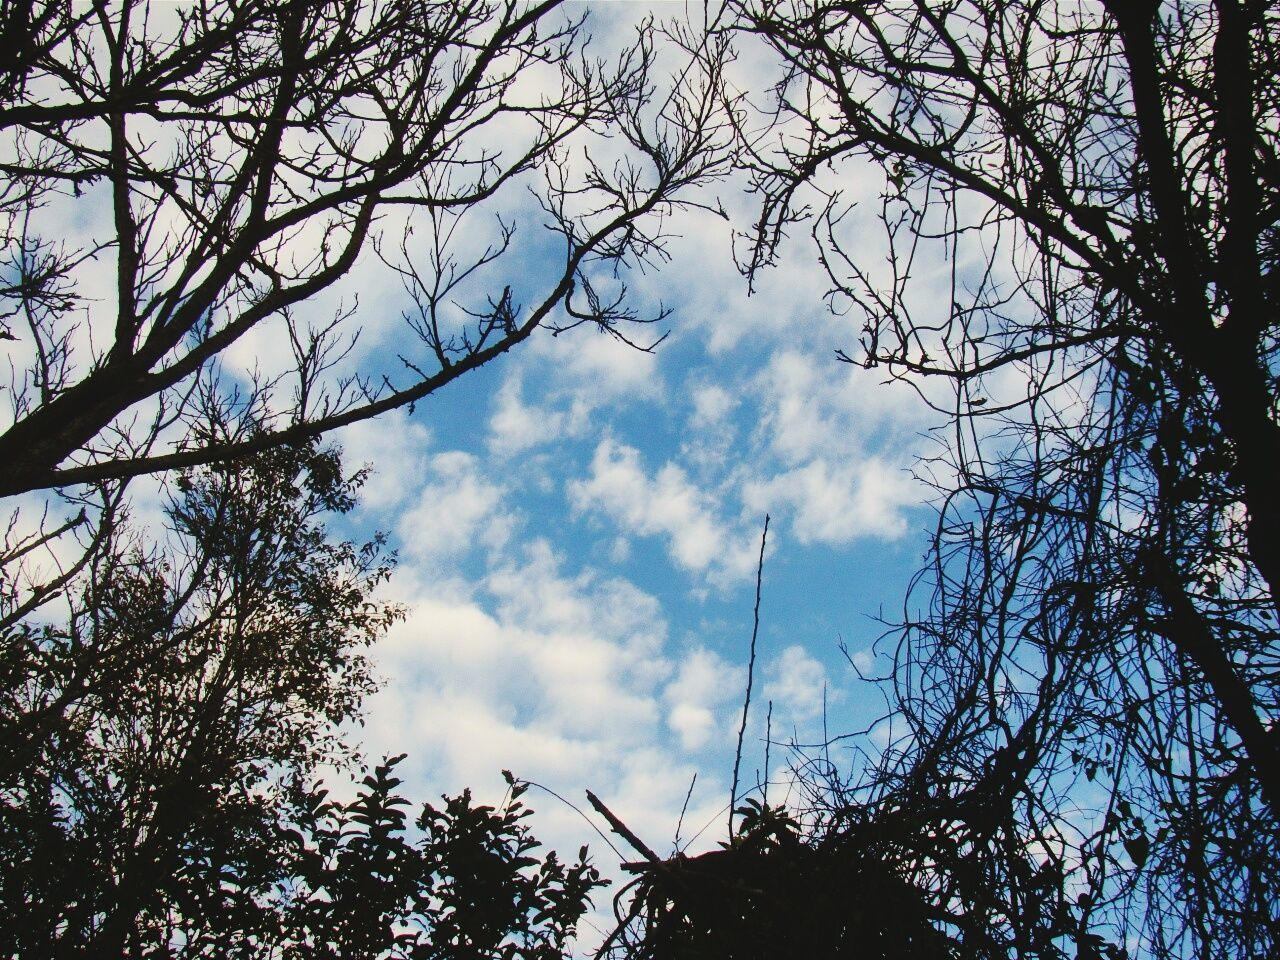 tree, low angle view, sky, branch, nature, day, cloud - sky, no people, growth, beauty in nature, outdoors, forest